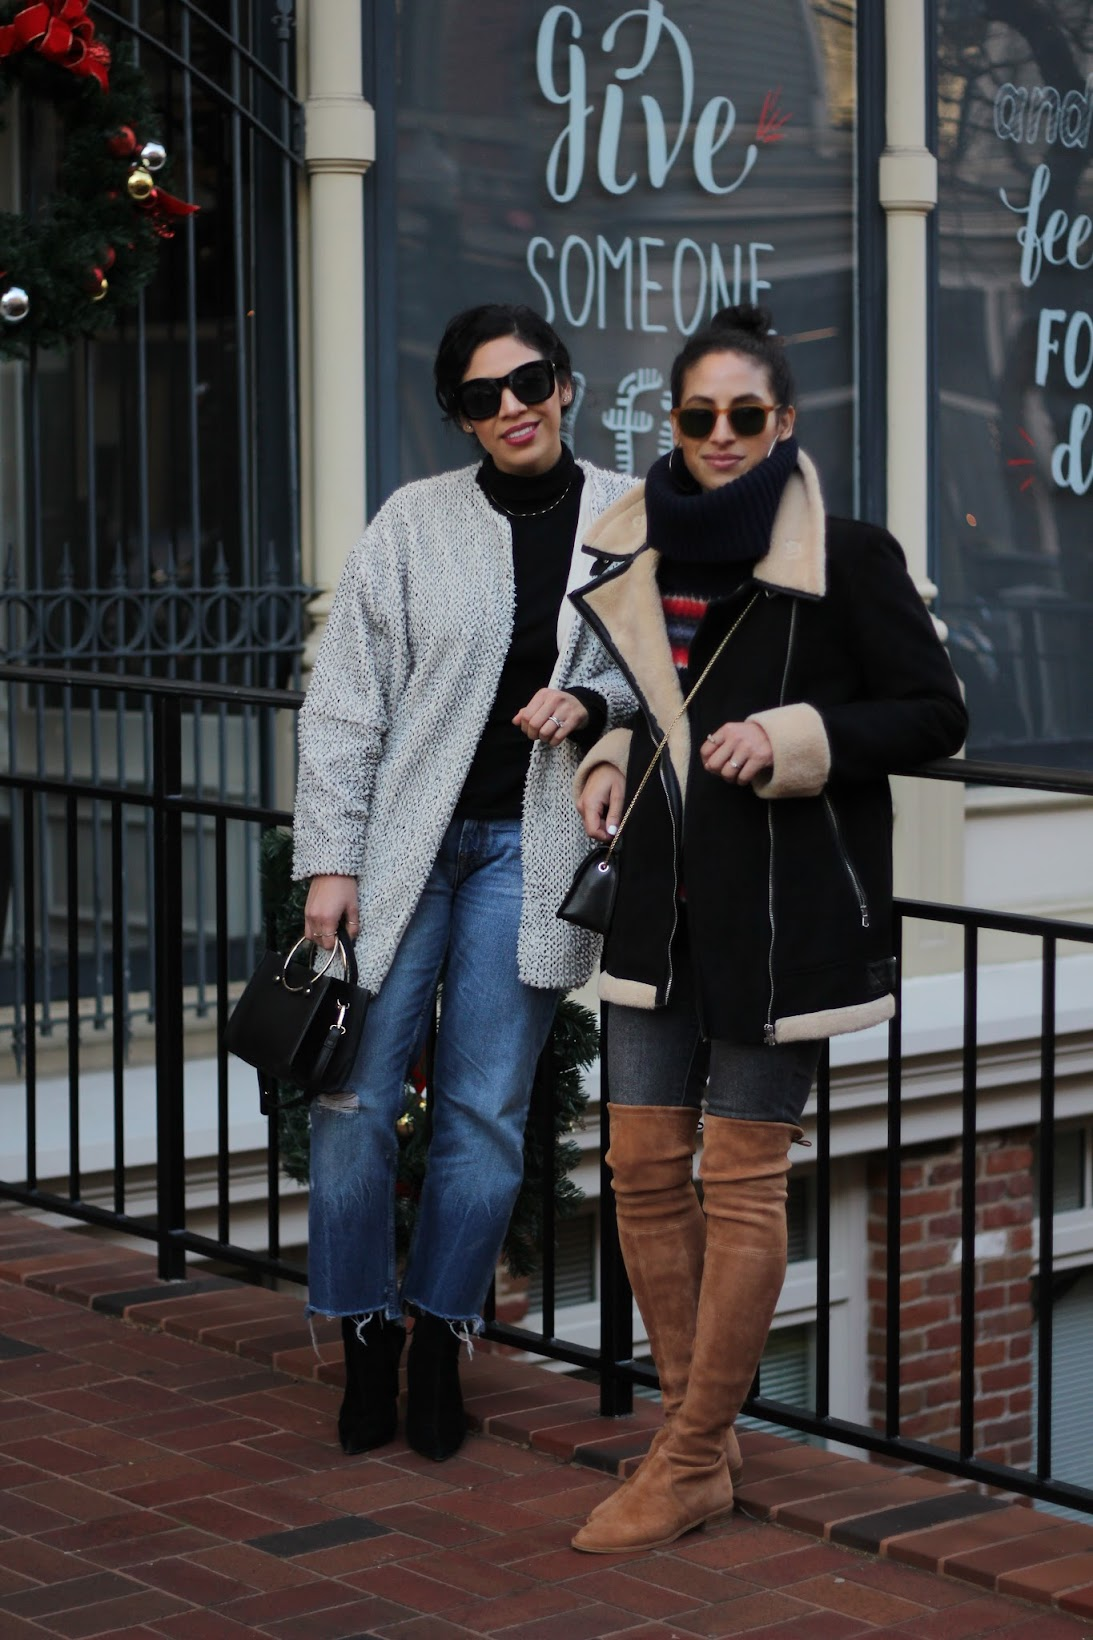 blogger besties, daisy's fashion garden, zara winter style, Furla crossbody, garrett leight sunglasses, how to look chic this winter, SF bloggers, Stuart Weitzman boots, NYFW